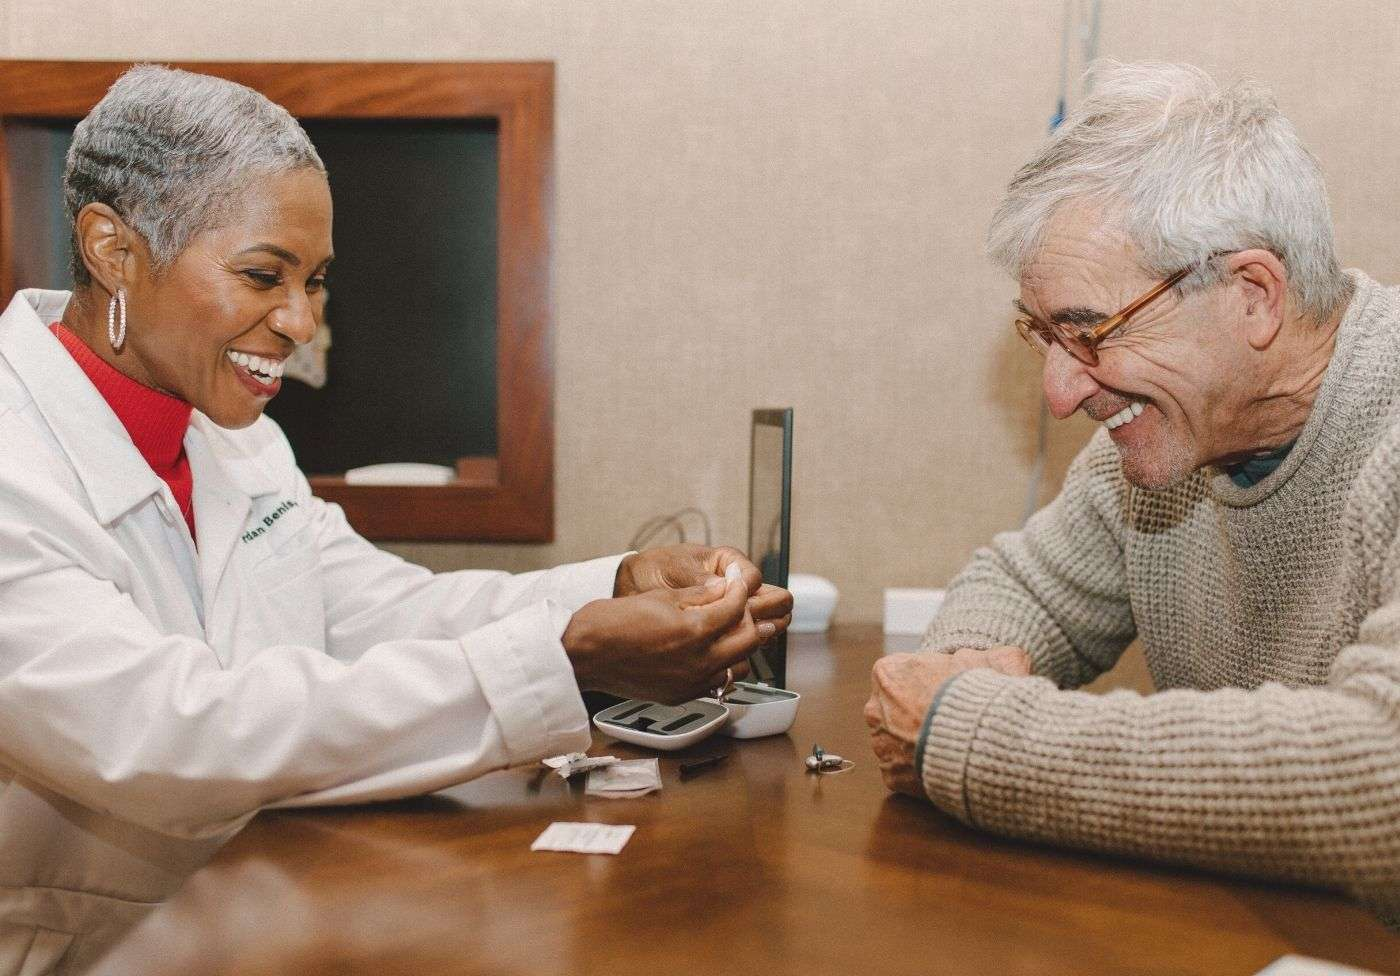 Audiologist helps a patient in the Lone Tree Denver clinic